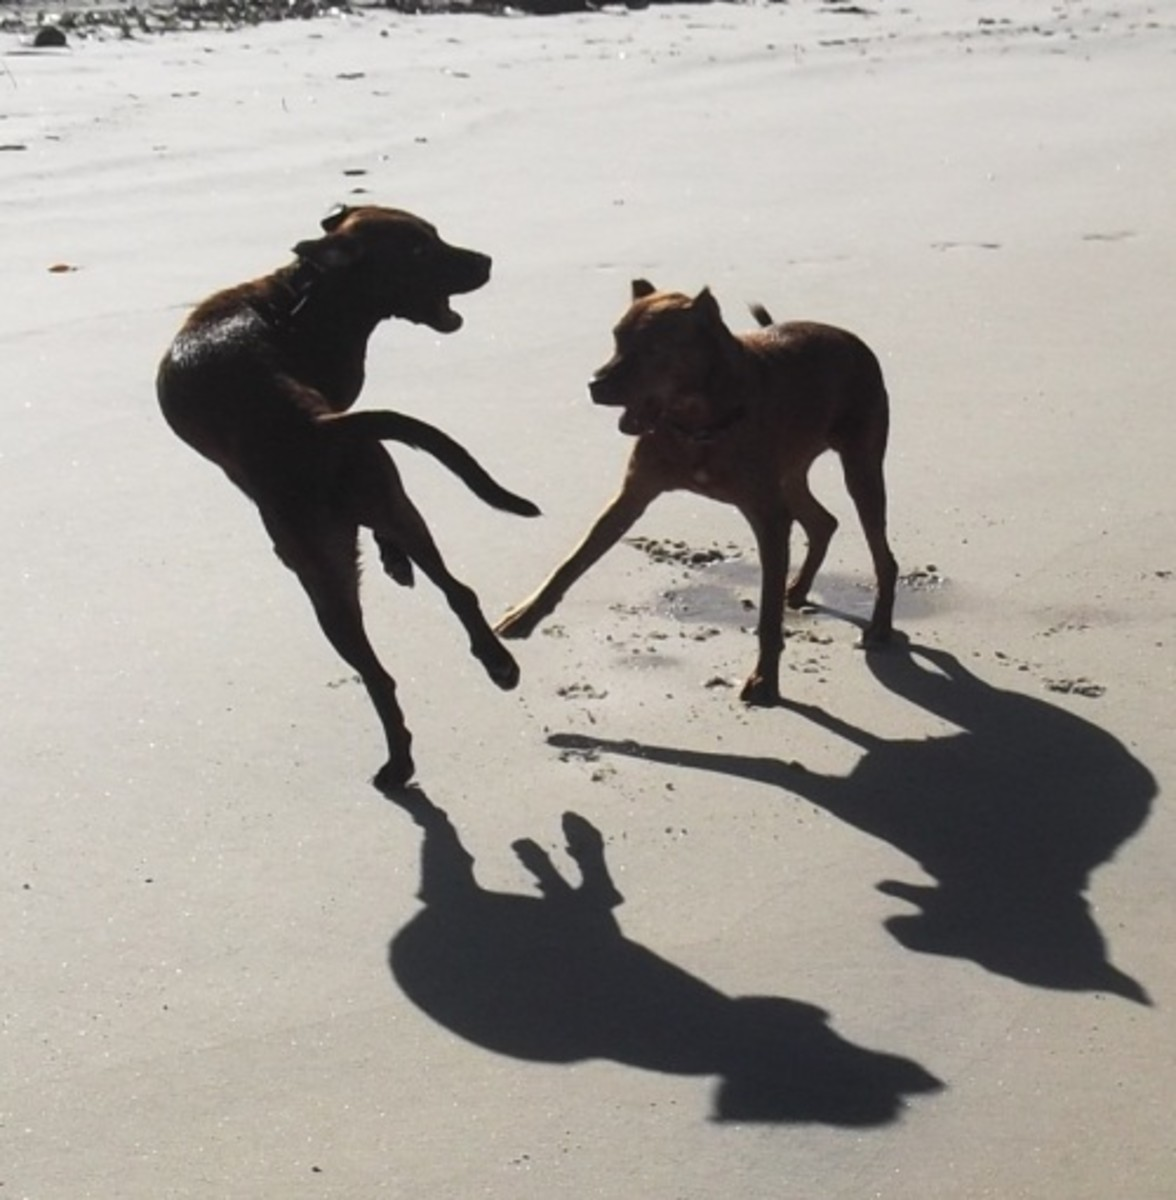 My dog and her sister on the beach.